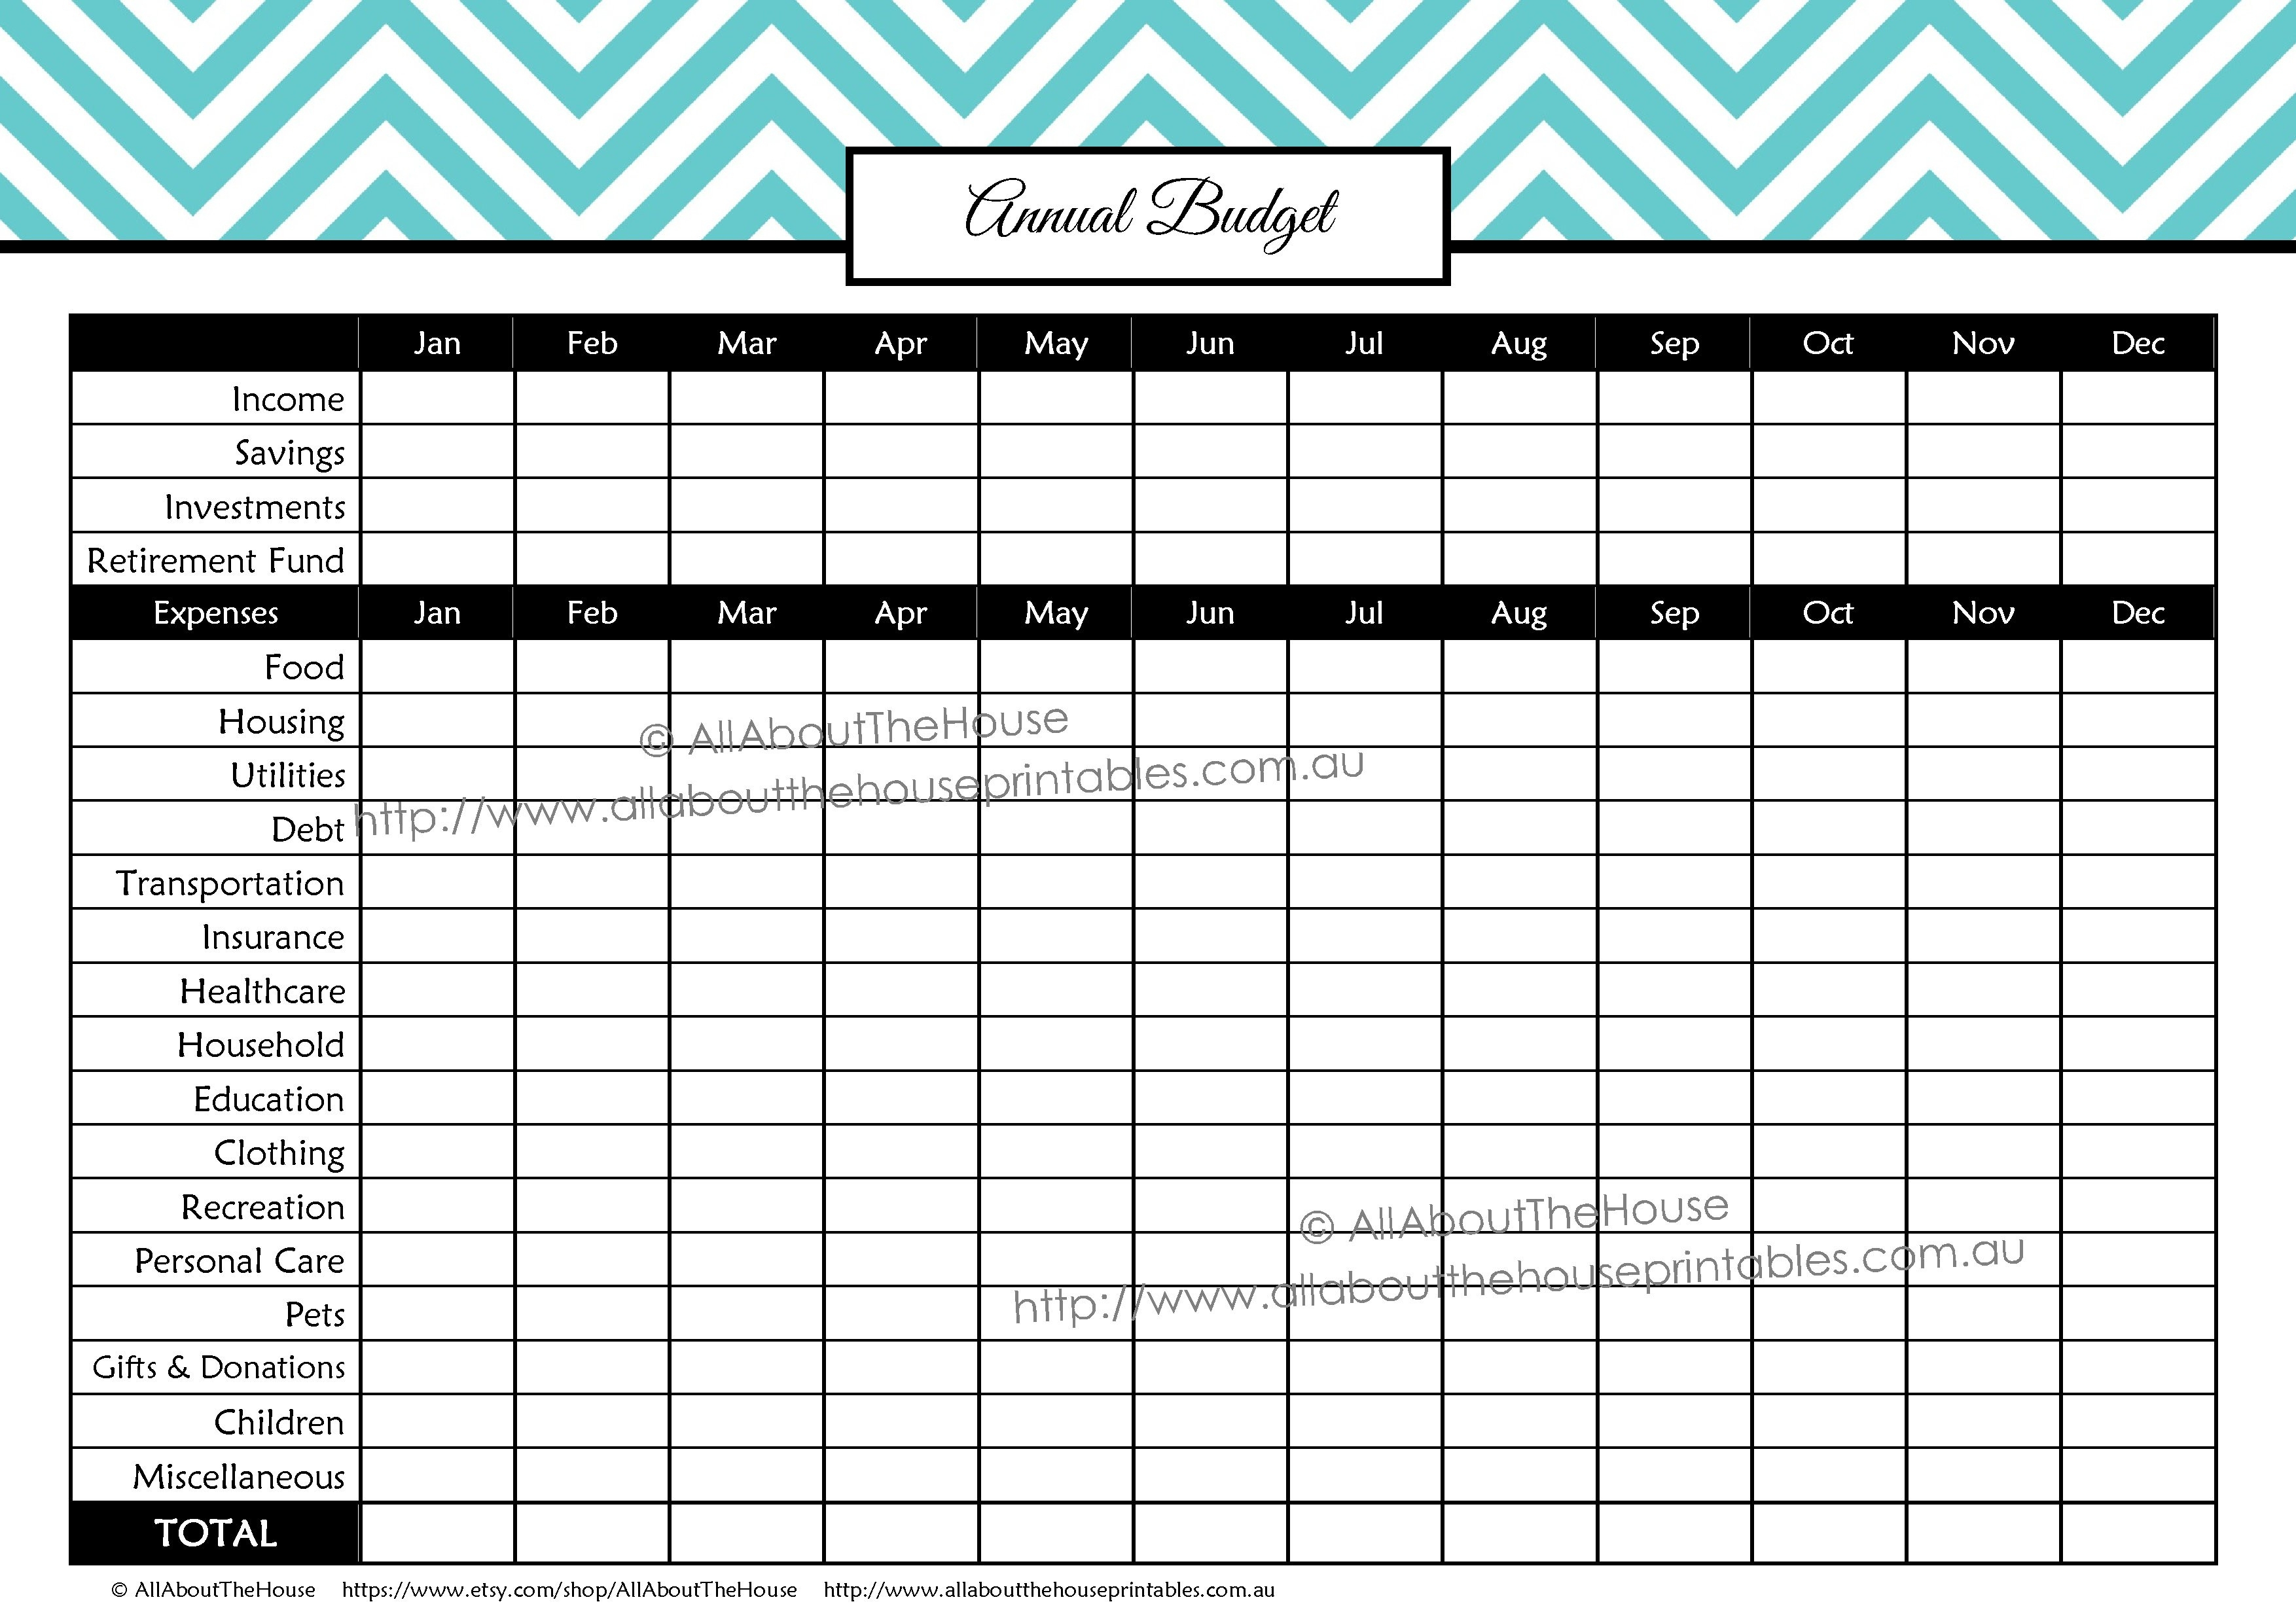 Free Bill Pay Checklist | Allaboutthehouse Printables Monthly Bill - Free Printable Monthly Bill Checklist